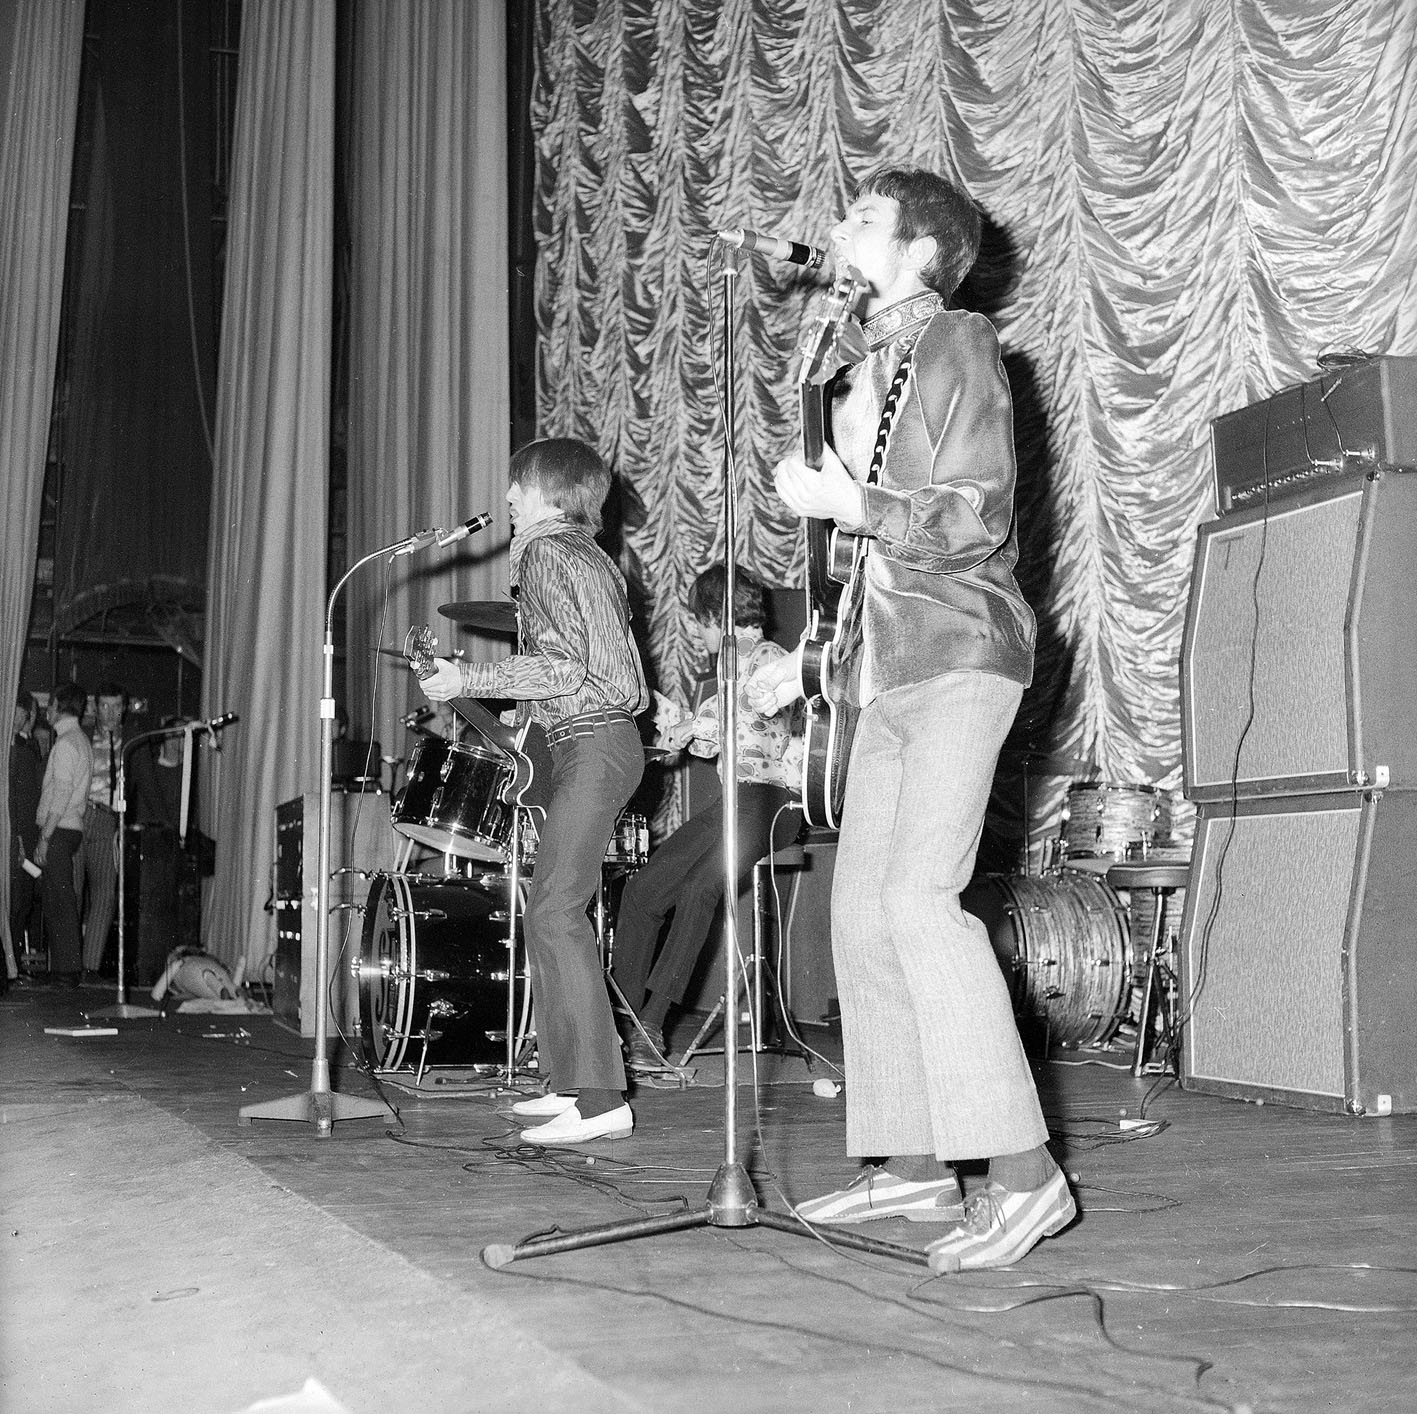 Small_Faces11(www.makingtime.co.uk)